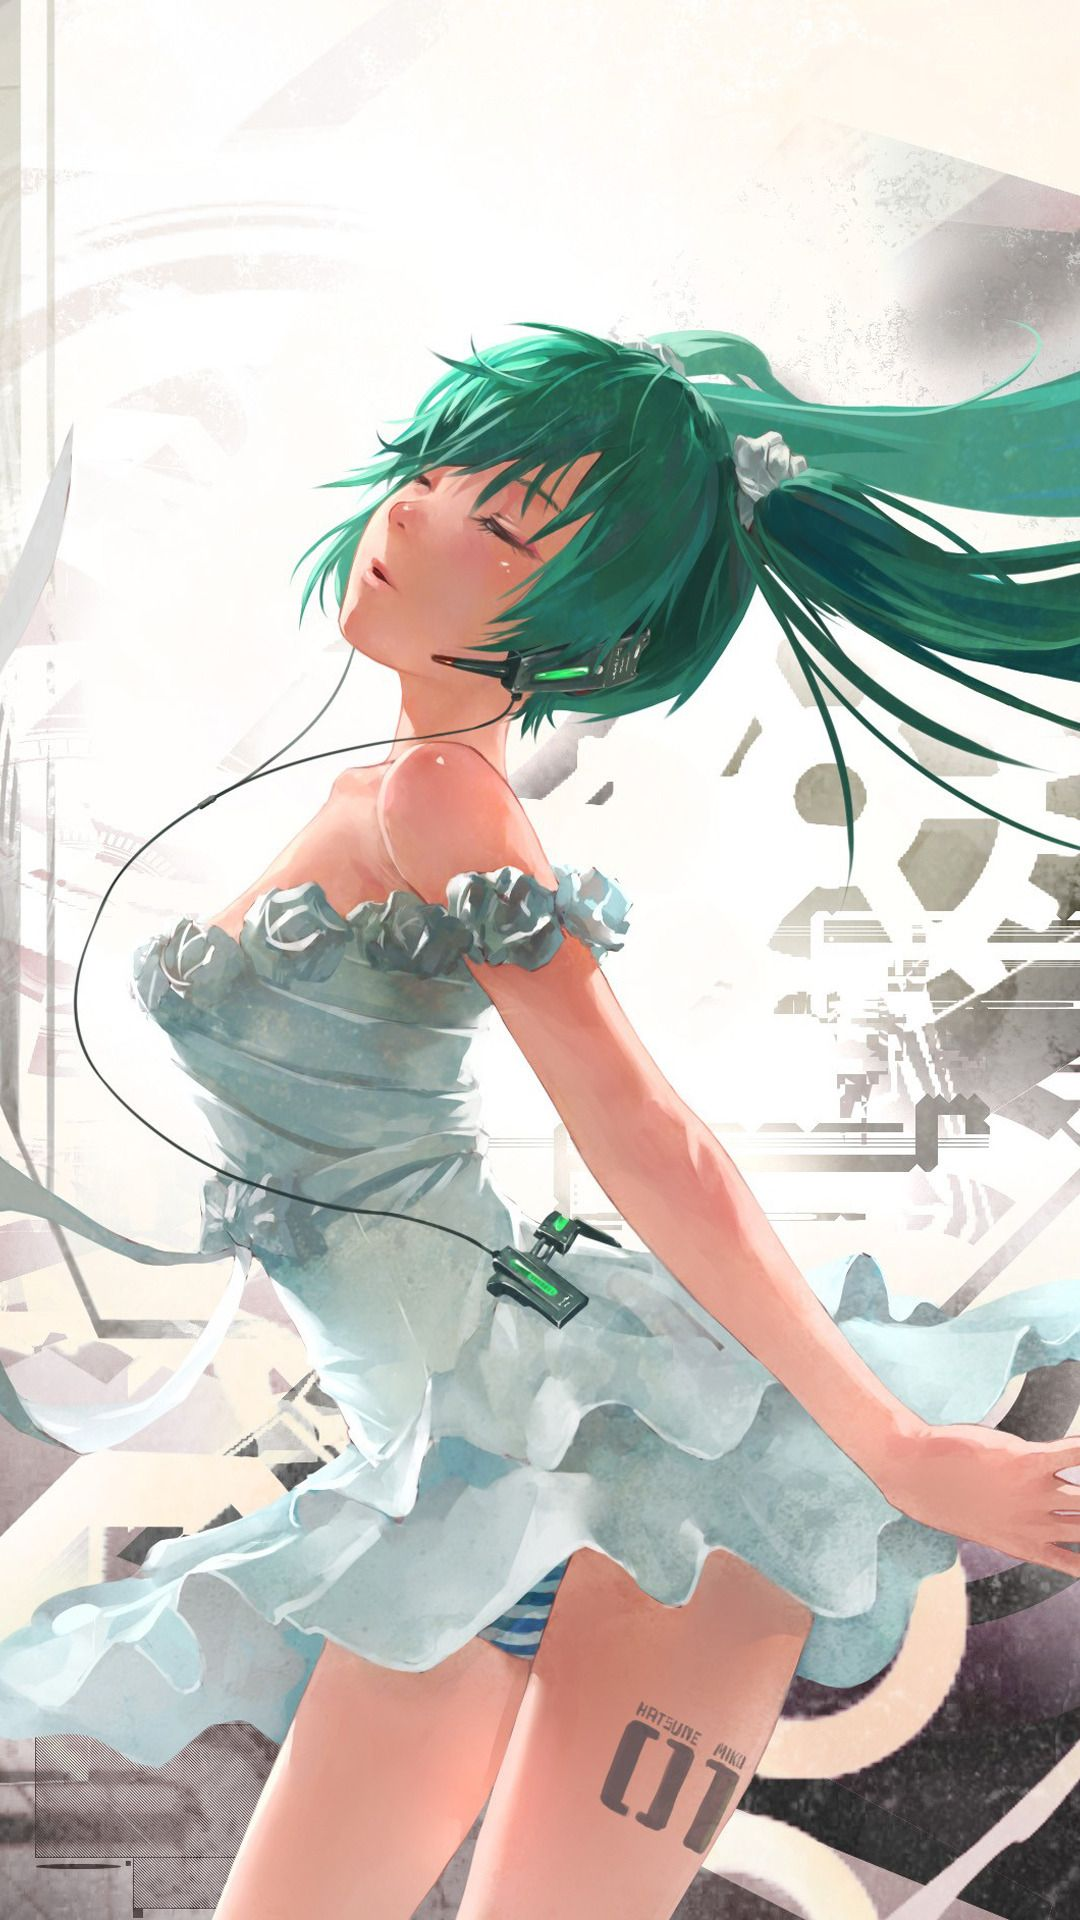 Vocaloid iphone wallpaper tumblr - Hatsune Miku Vocaloid Anime Best Htc One Wallpapers